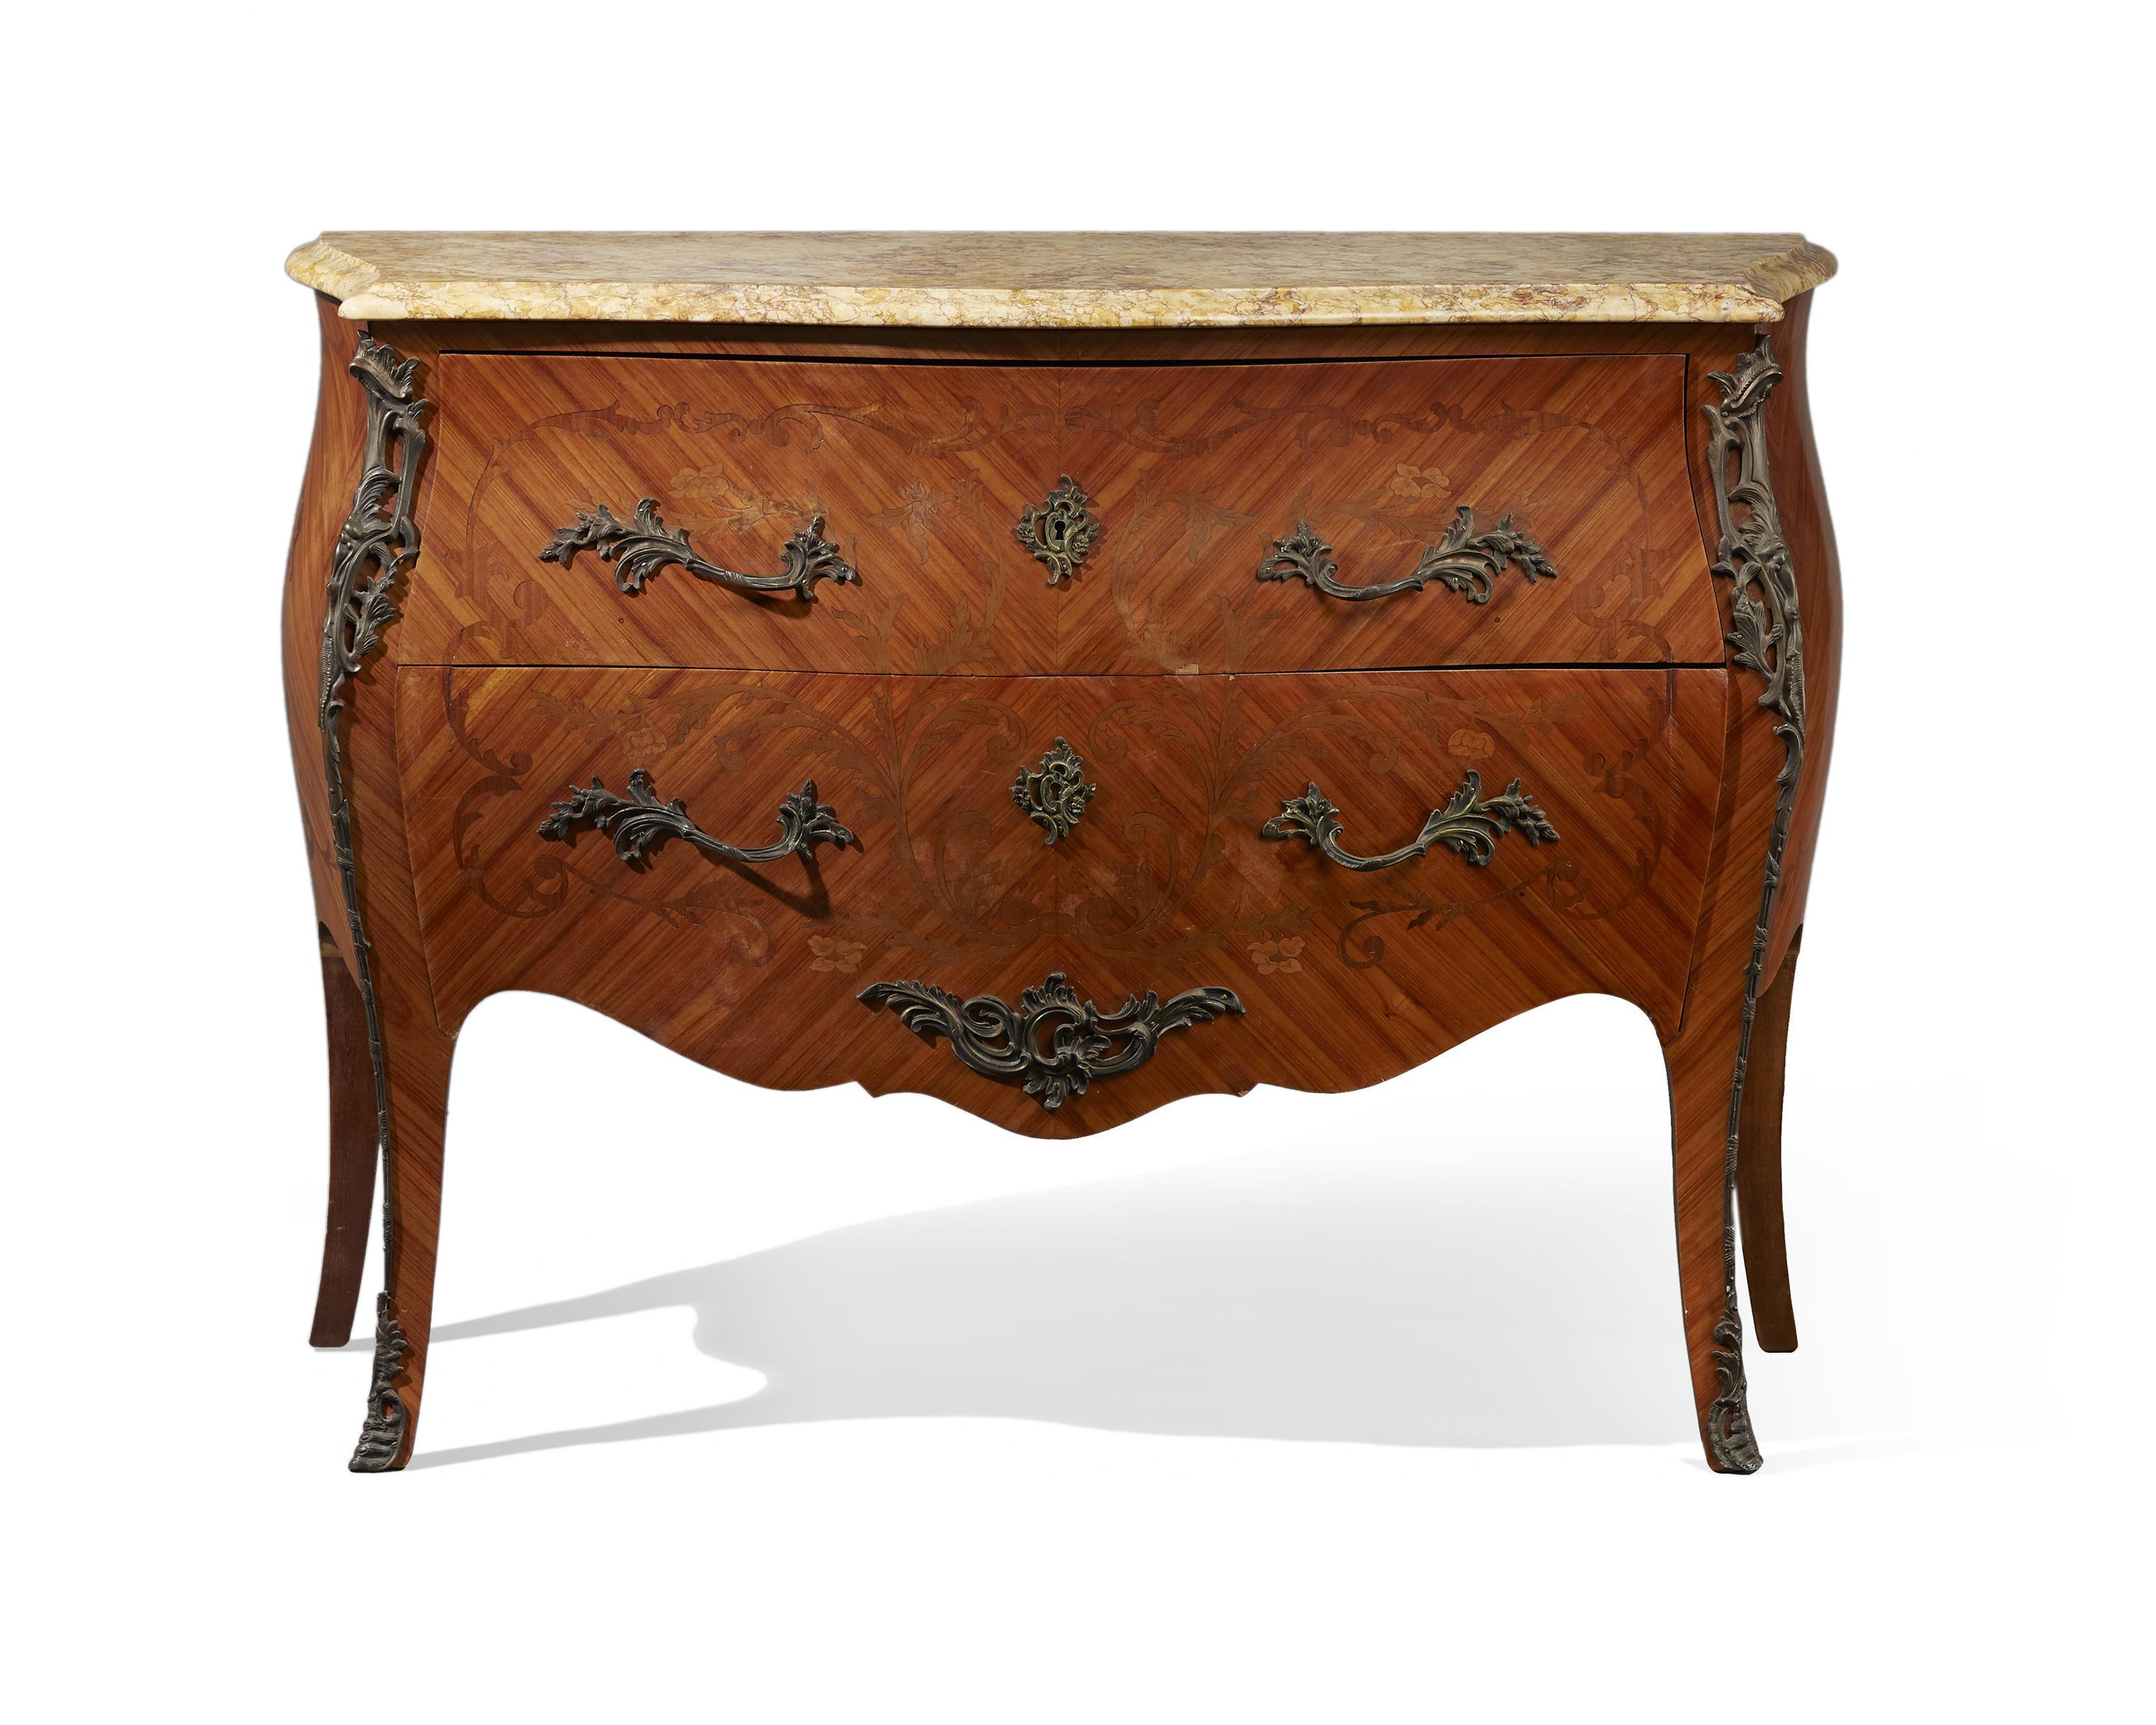 A French Louis XV-style commode